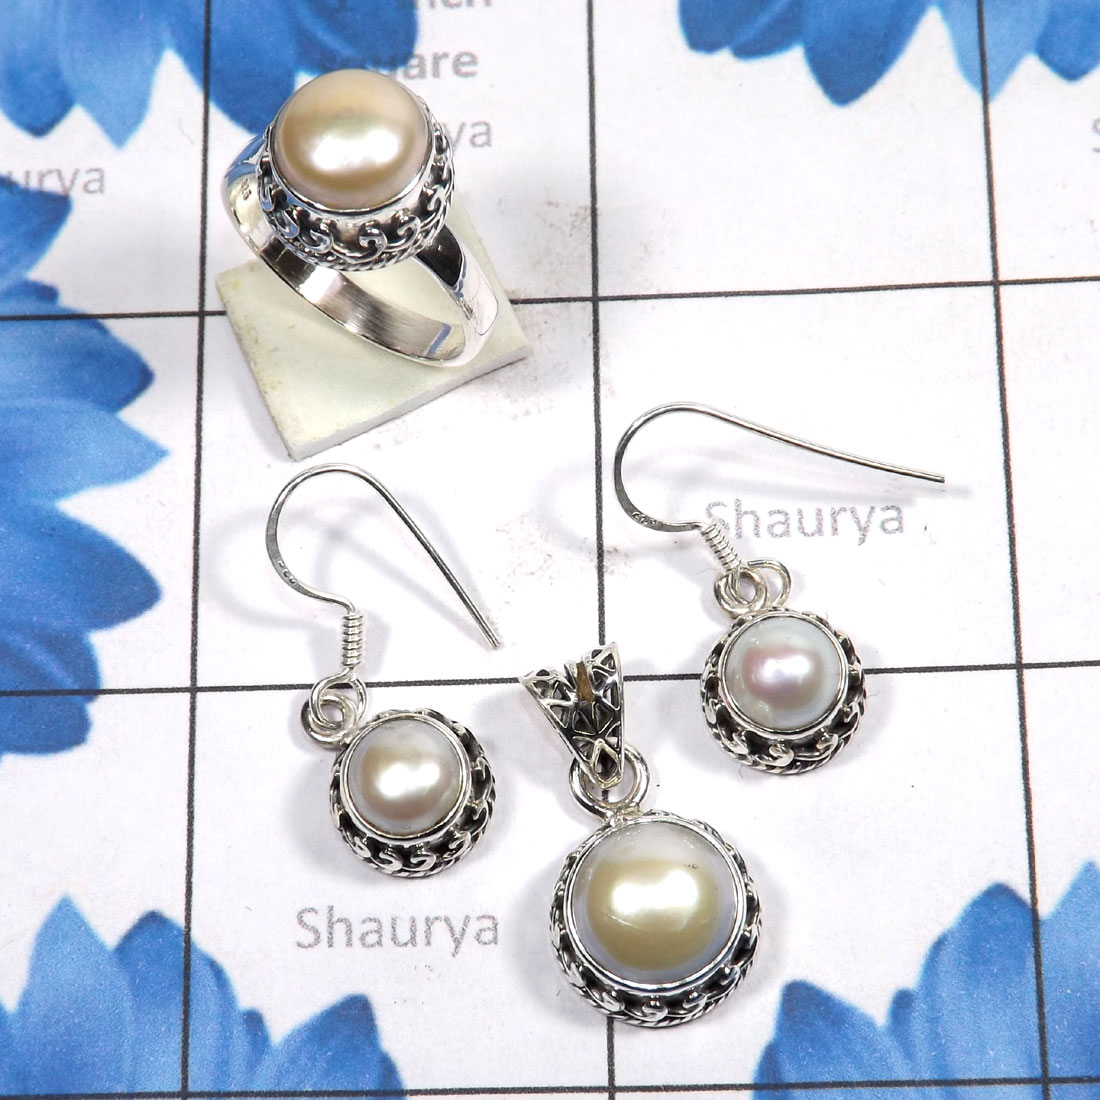 3 Pcs Pearl Set B - PPS995-Genuine Pearl 3 Pcs Earring, Pendant, Ring Set 925 Sterli